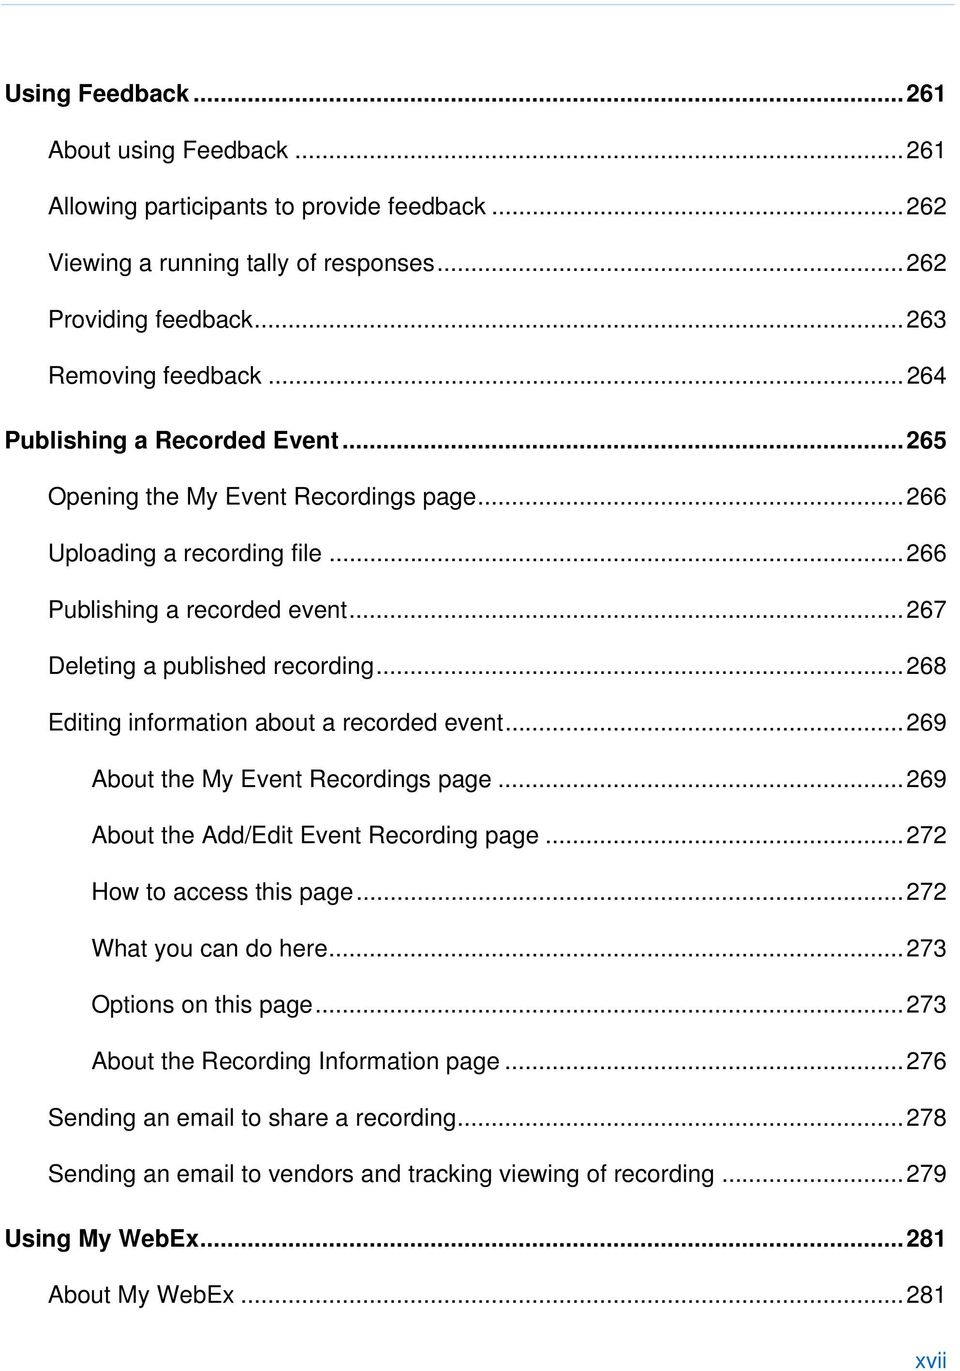 .. 268 Editing information about a recorded event... 269 About the My Event Recordings page... 269 About the Add/Edit Event Recording page... 272 How to access this page... 272 What you can do here.